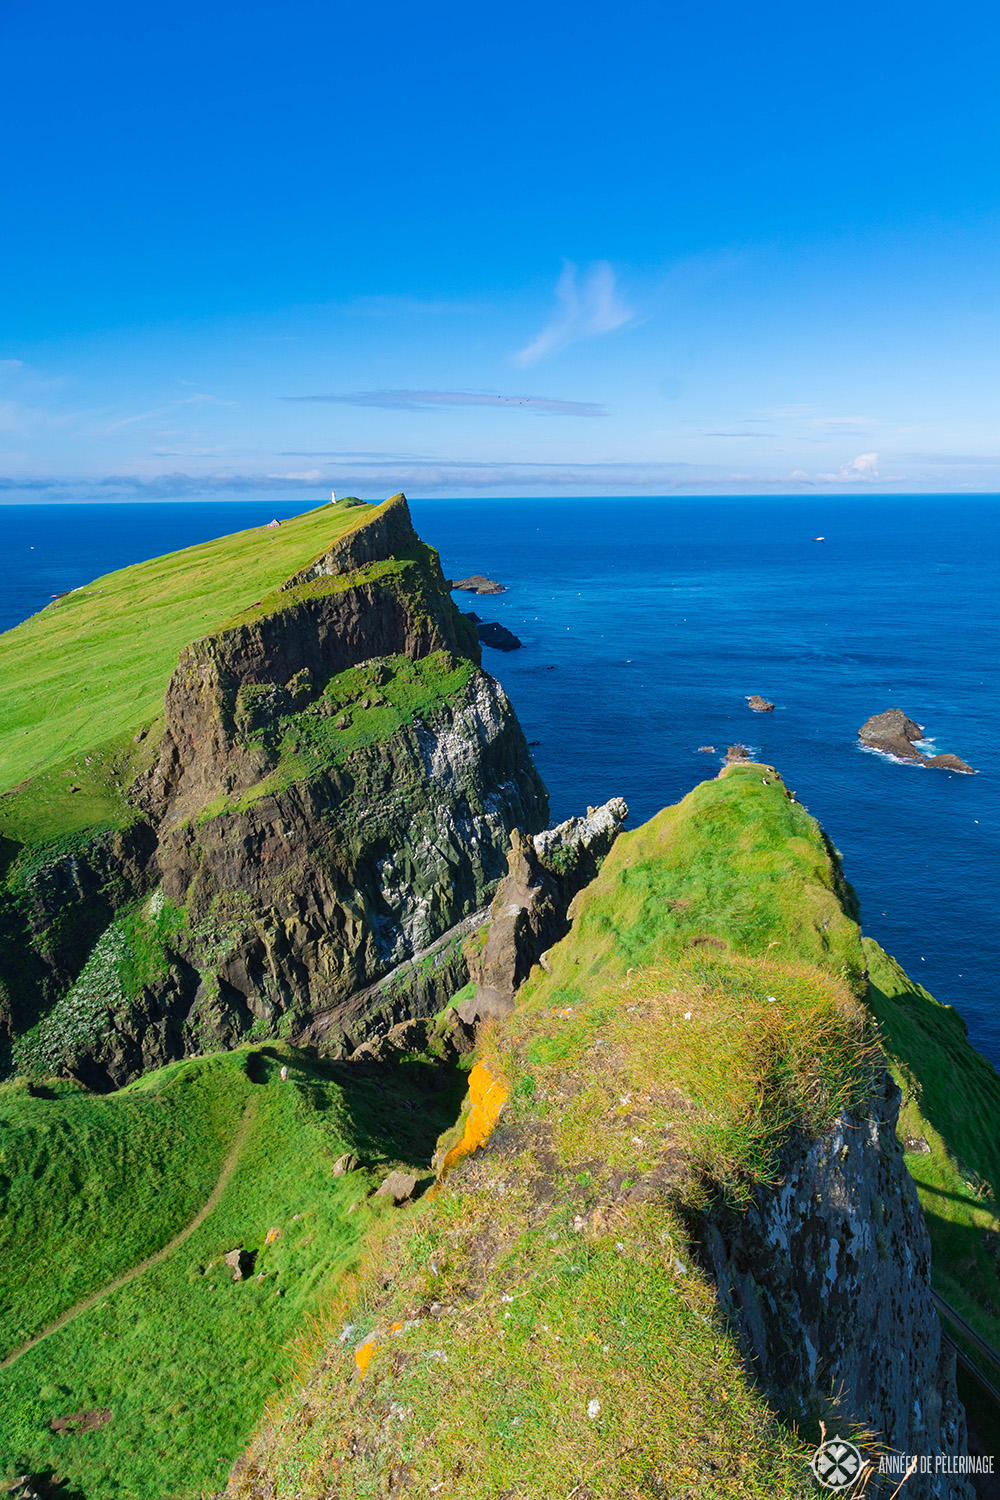 The island of Mykines in the Faroe Islands